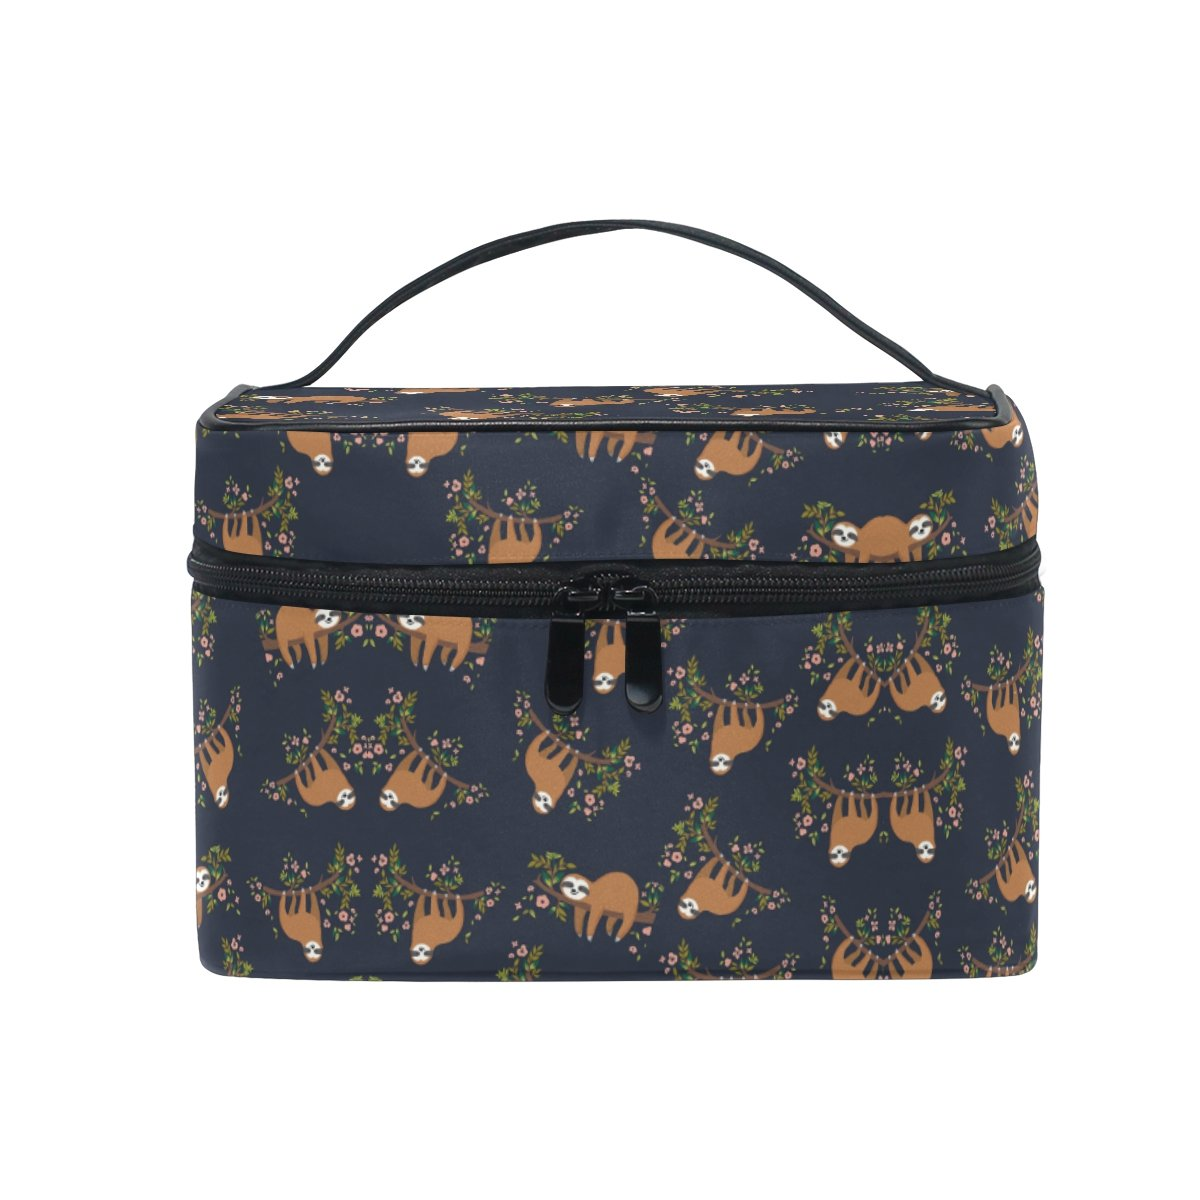 Finally resale start Makeup Bag Flower Sloth Travel Cosmetic Cas Max 50% OFF Bags Train Organizer